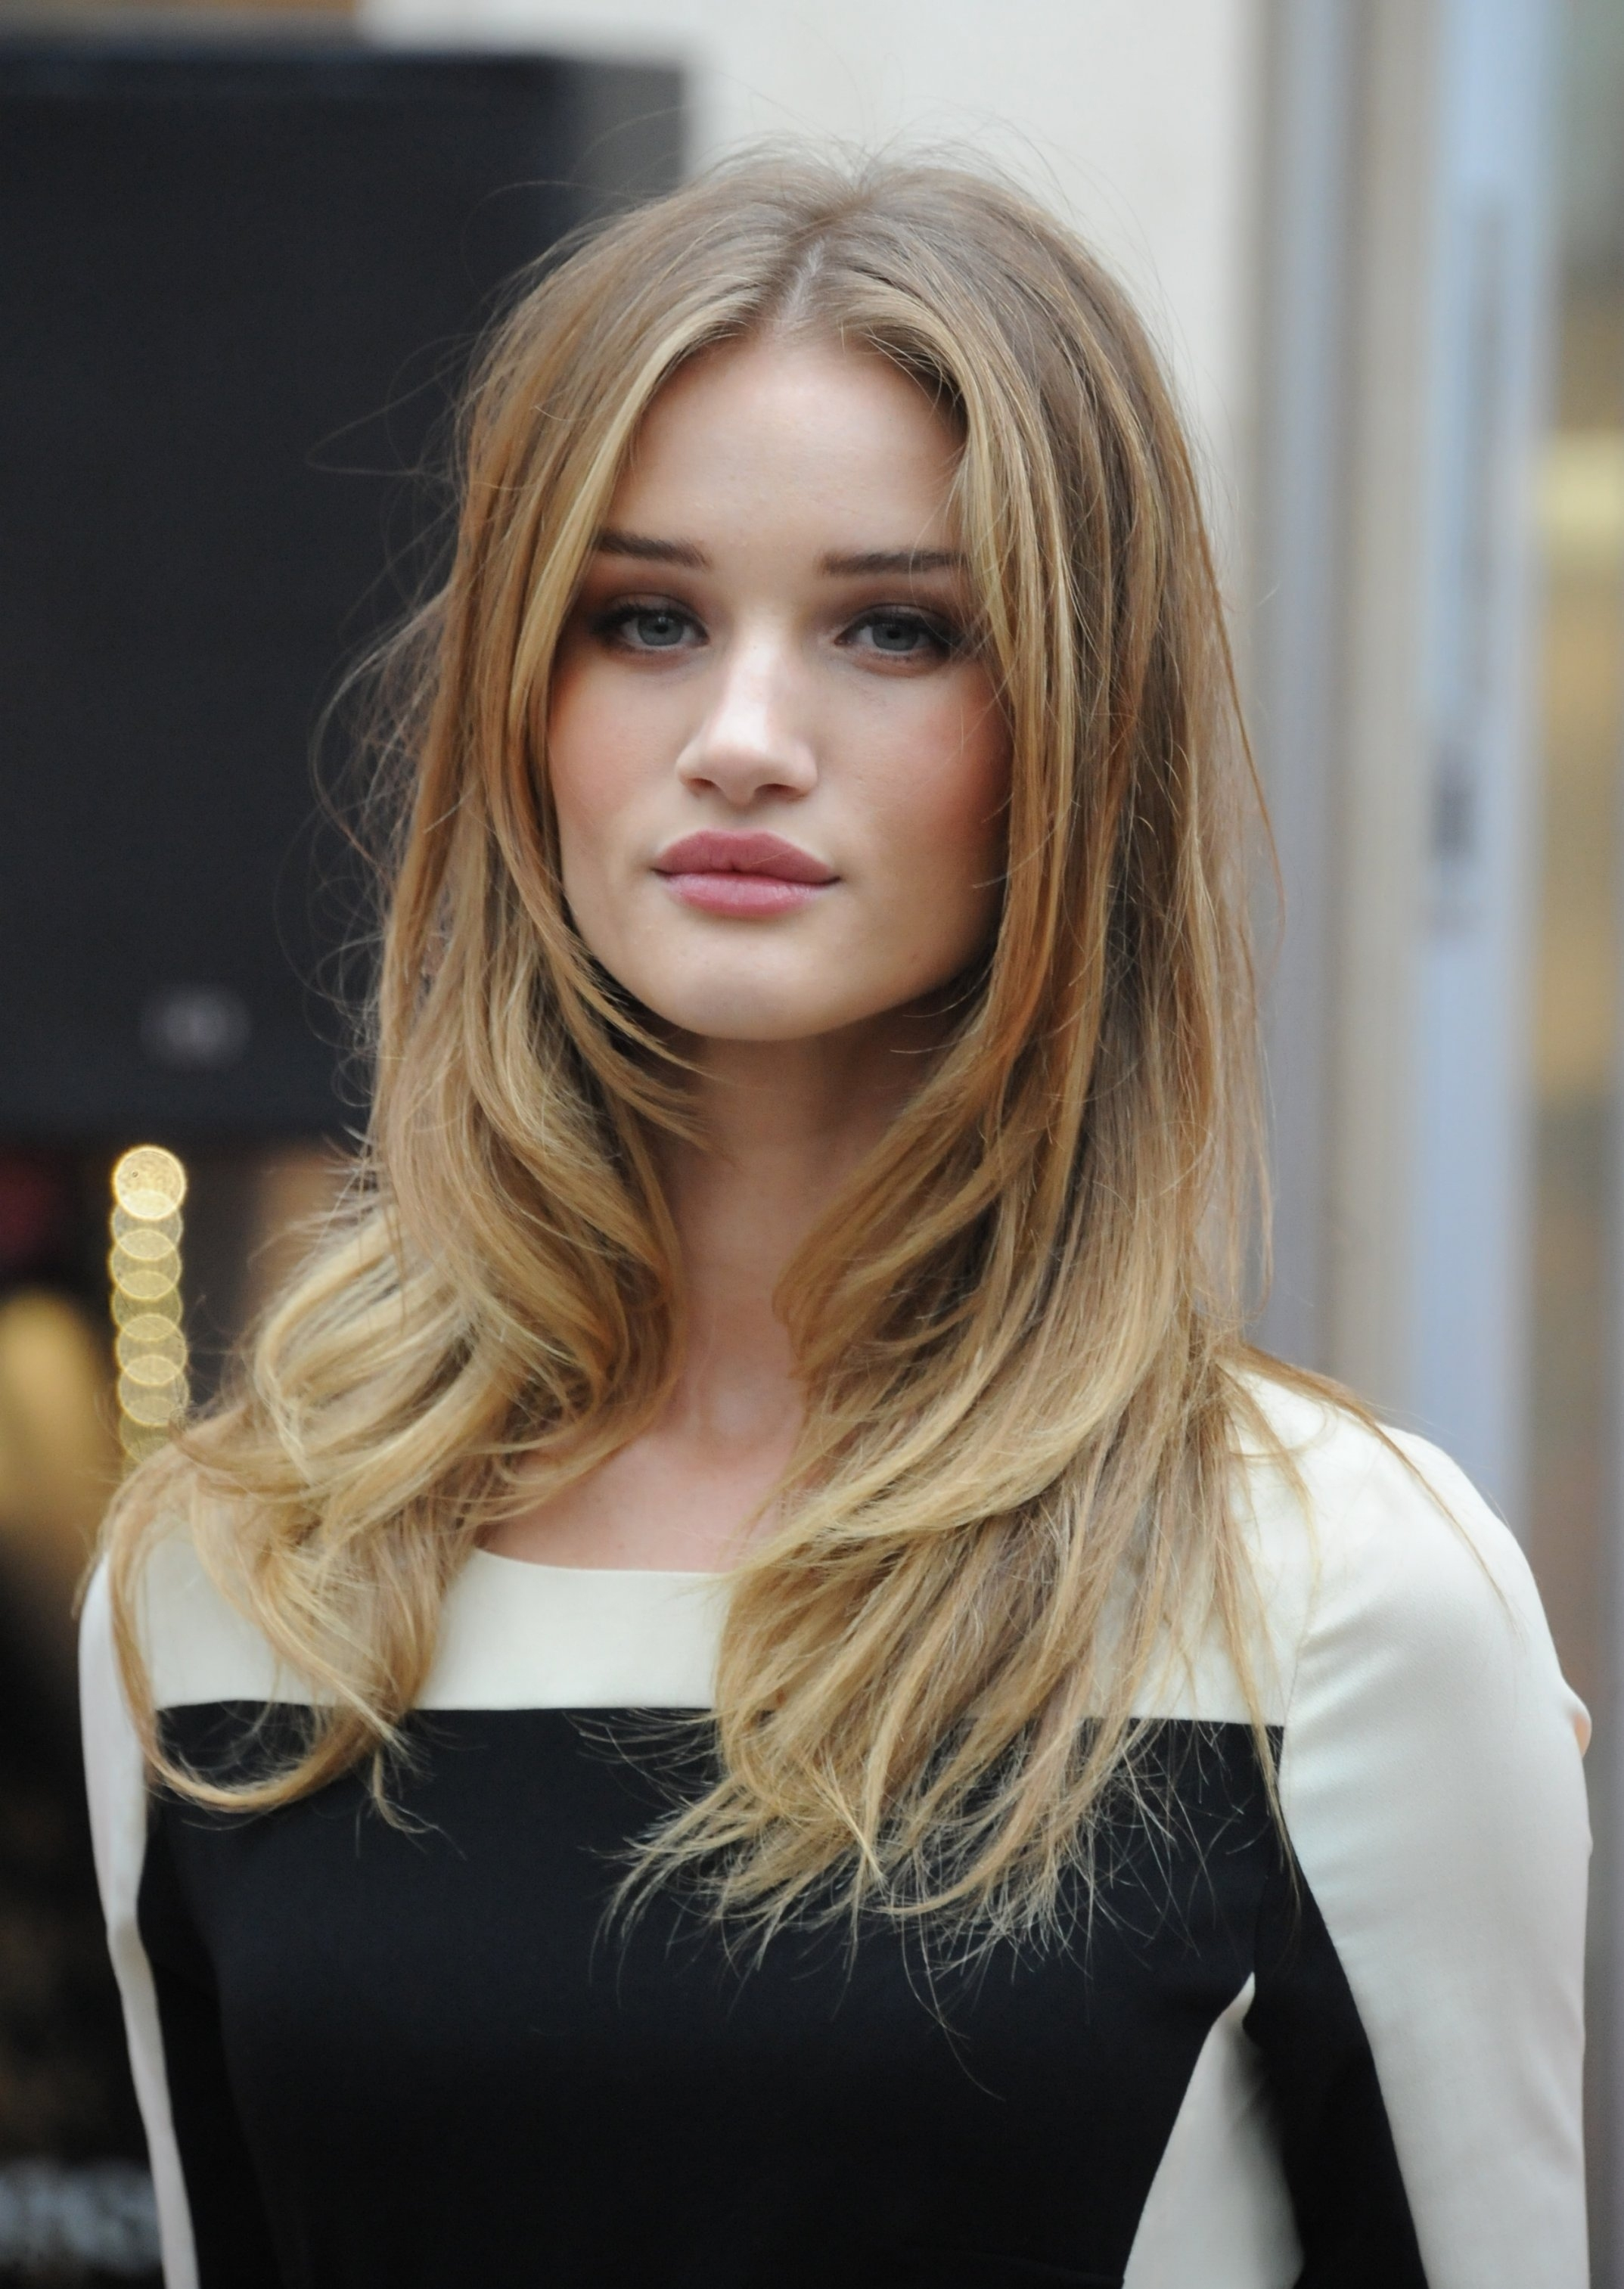 Hairstyles For Long Thin Hair Square Face | Hair | Best Hairstyles throughout Best Haircut For Square Face And Straight Hair